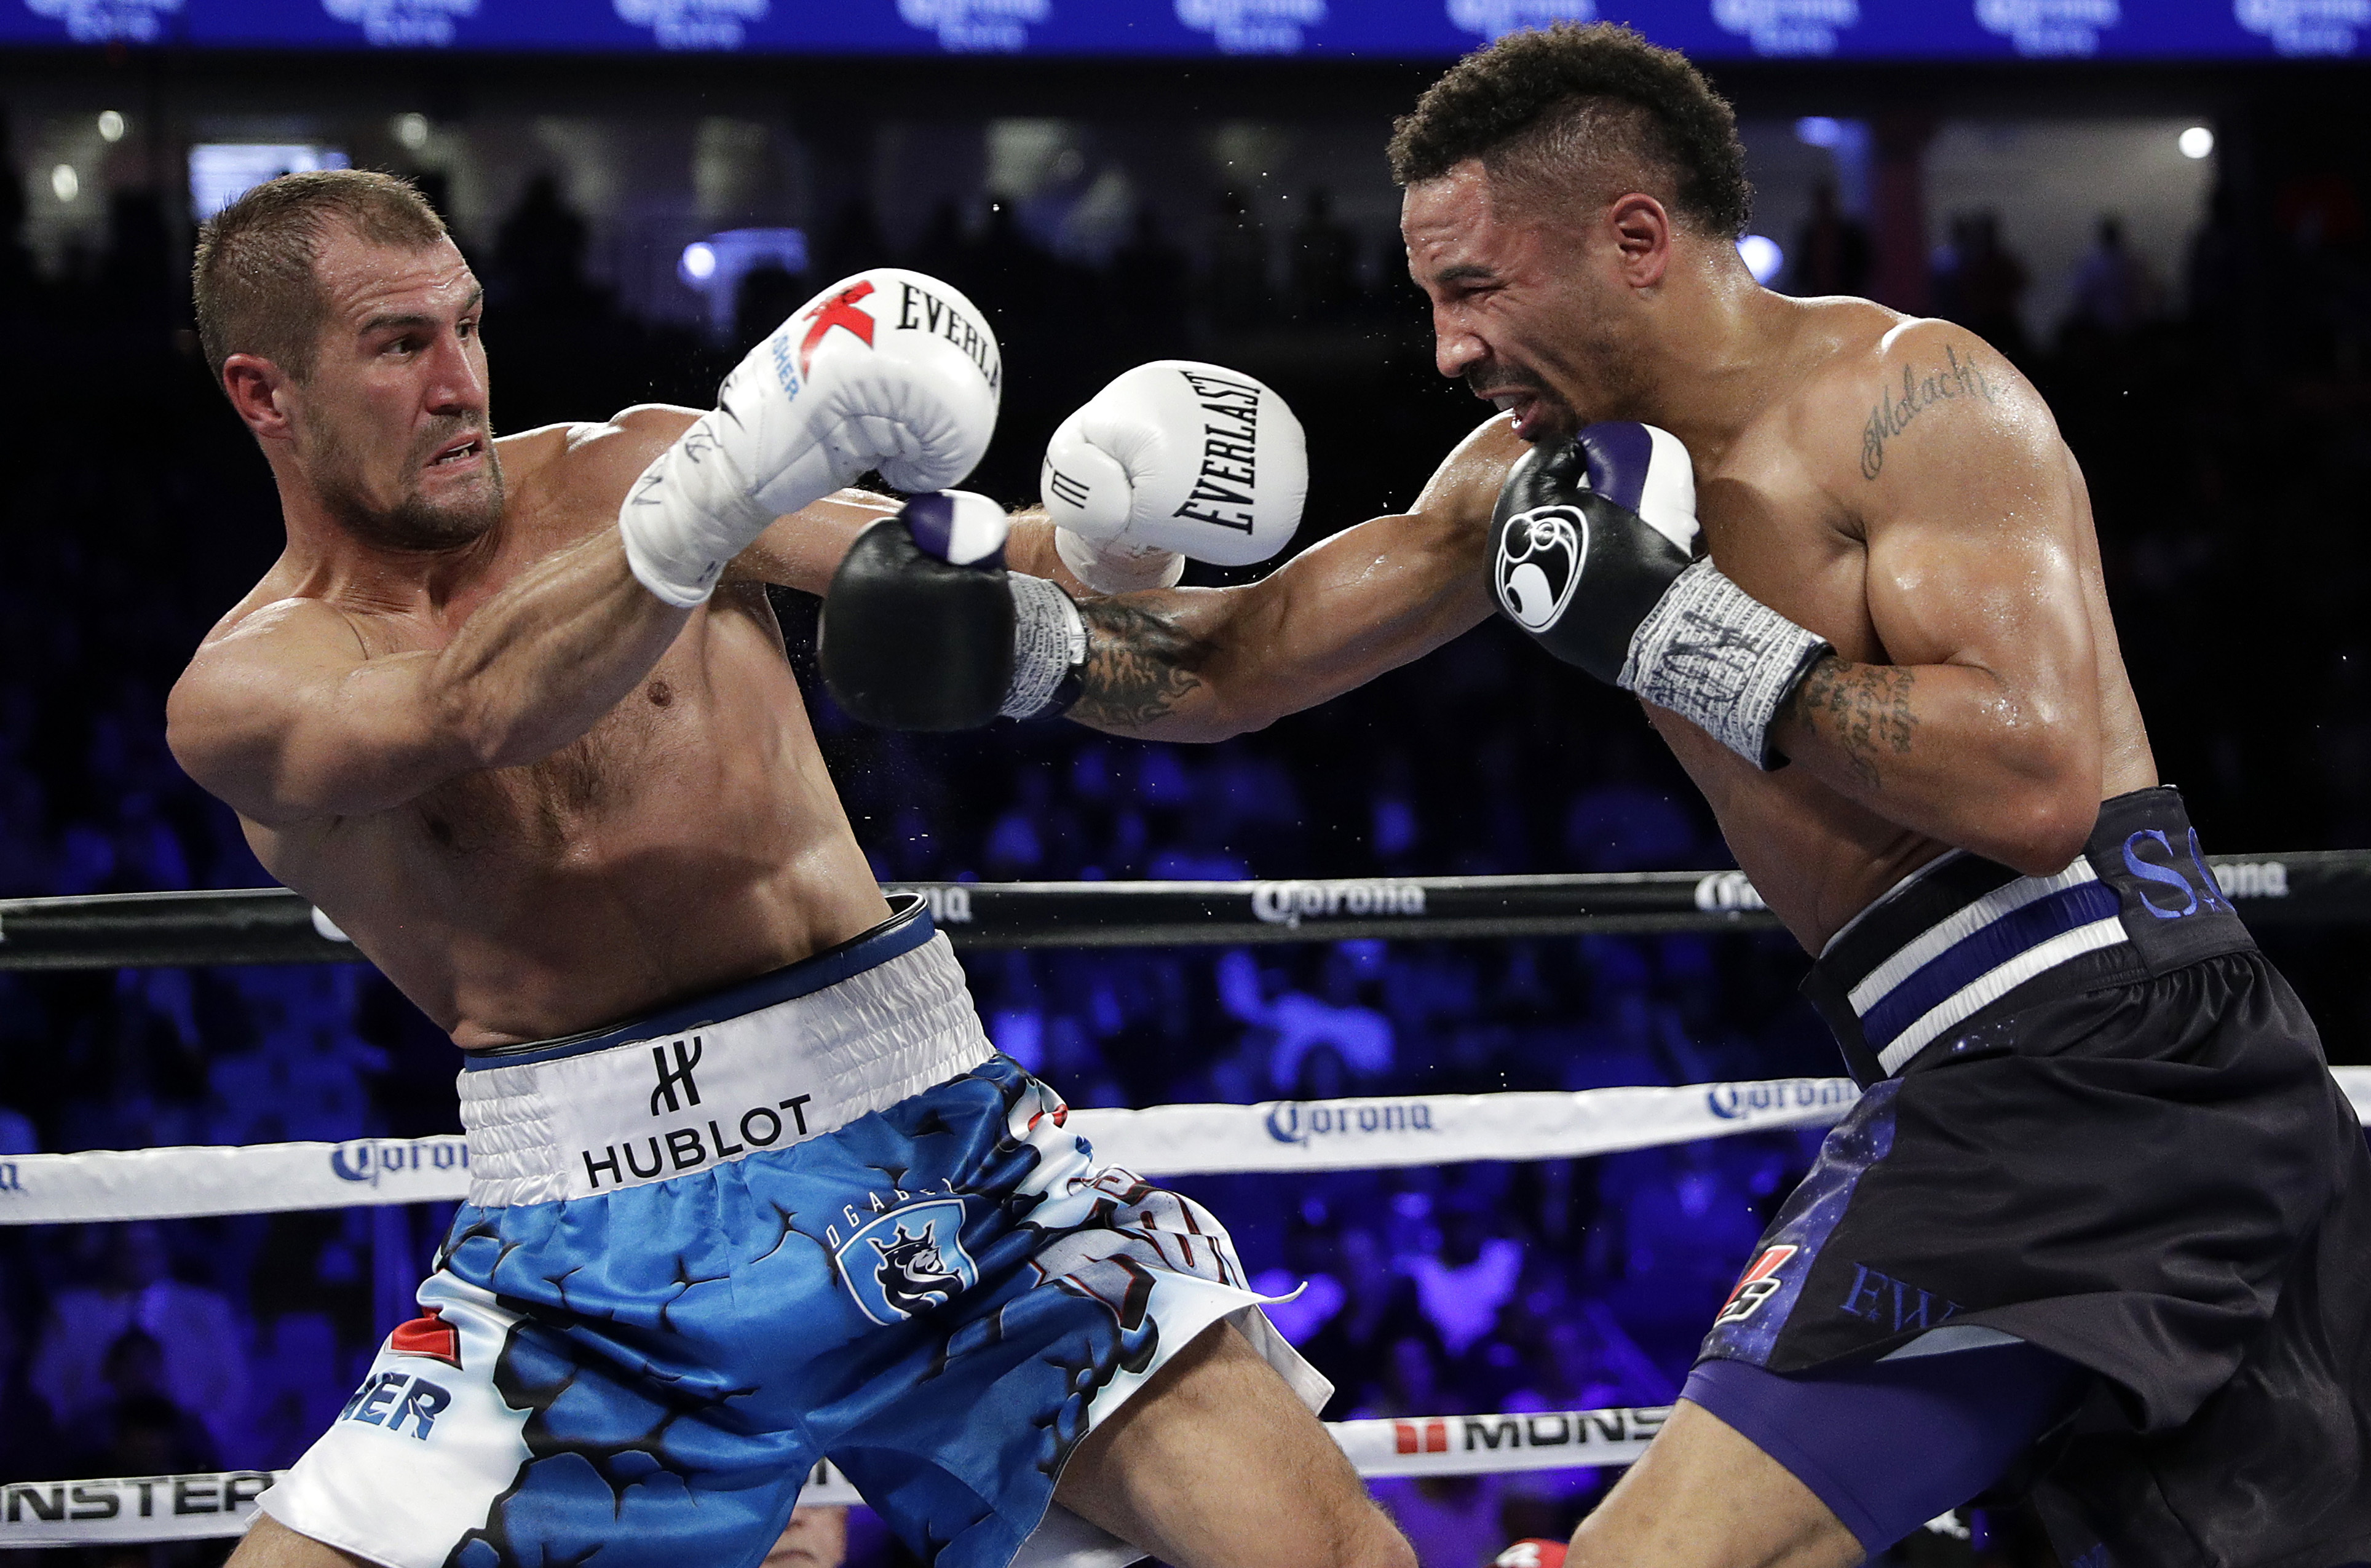 Sergey Kovalev, left, and Andre Ward are shown in action during their first fight at the T-Mobile Arena in Las Vegas, Nevada, November 19, 2016. (AP Photo/file)